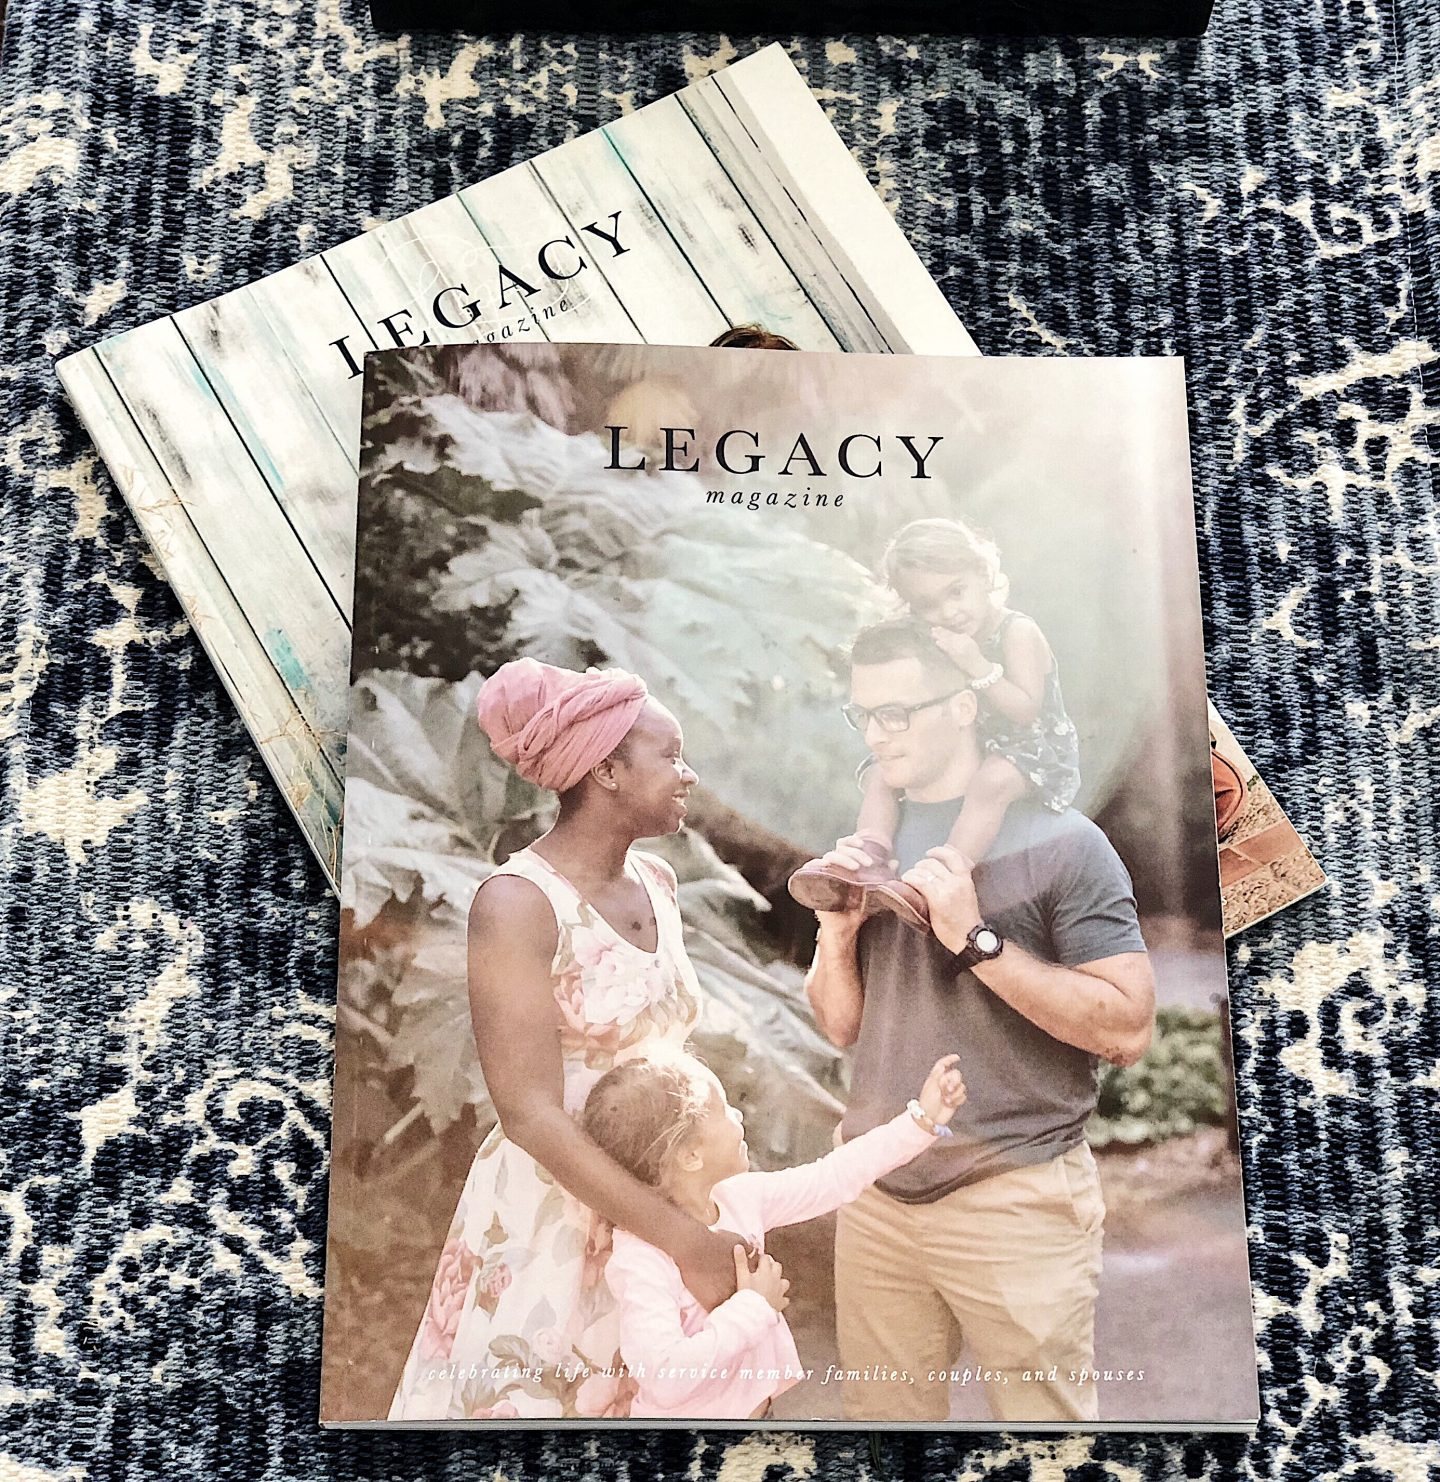 What is it about Legacy Magazine?